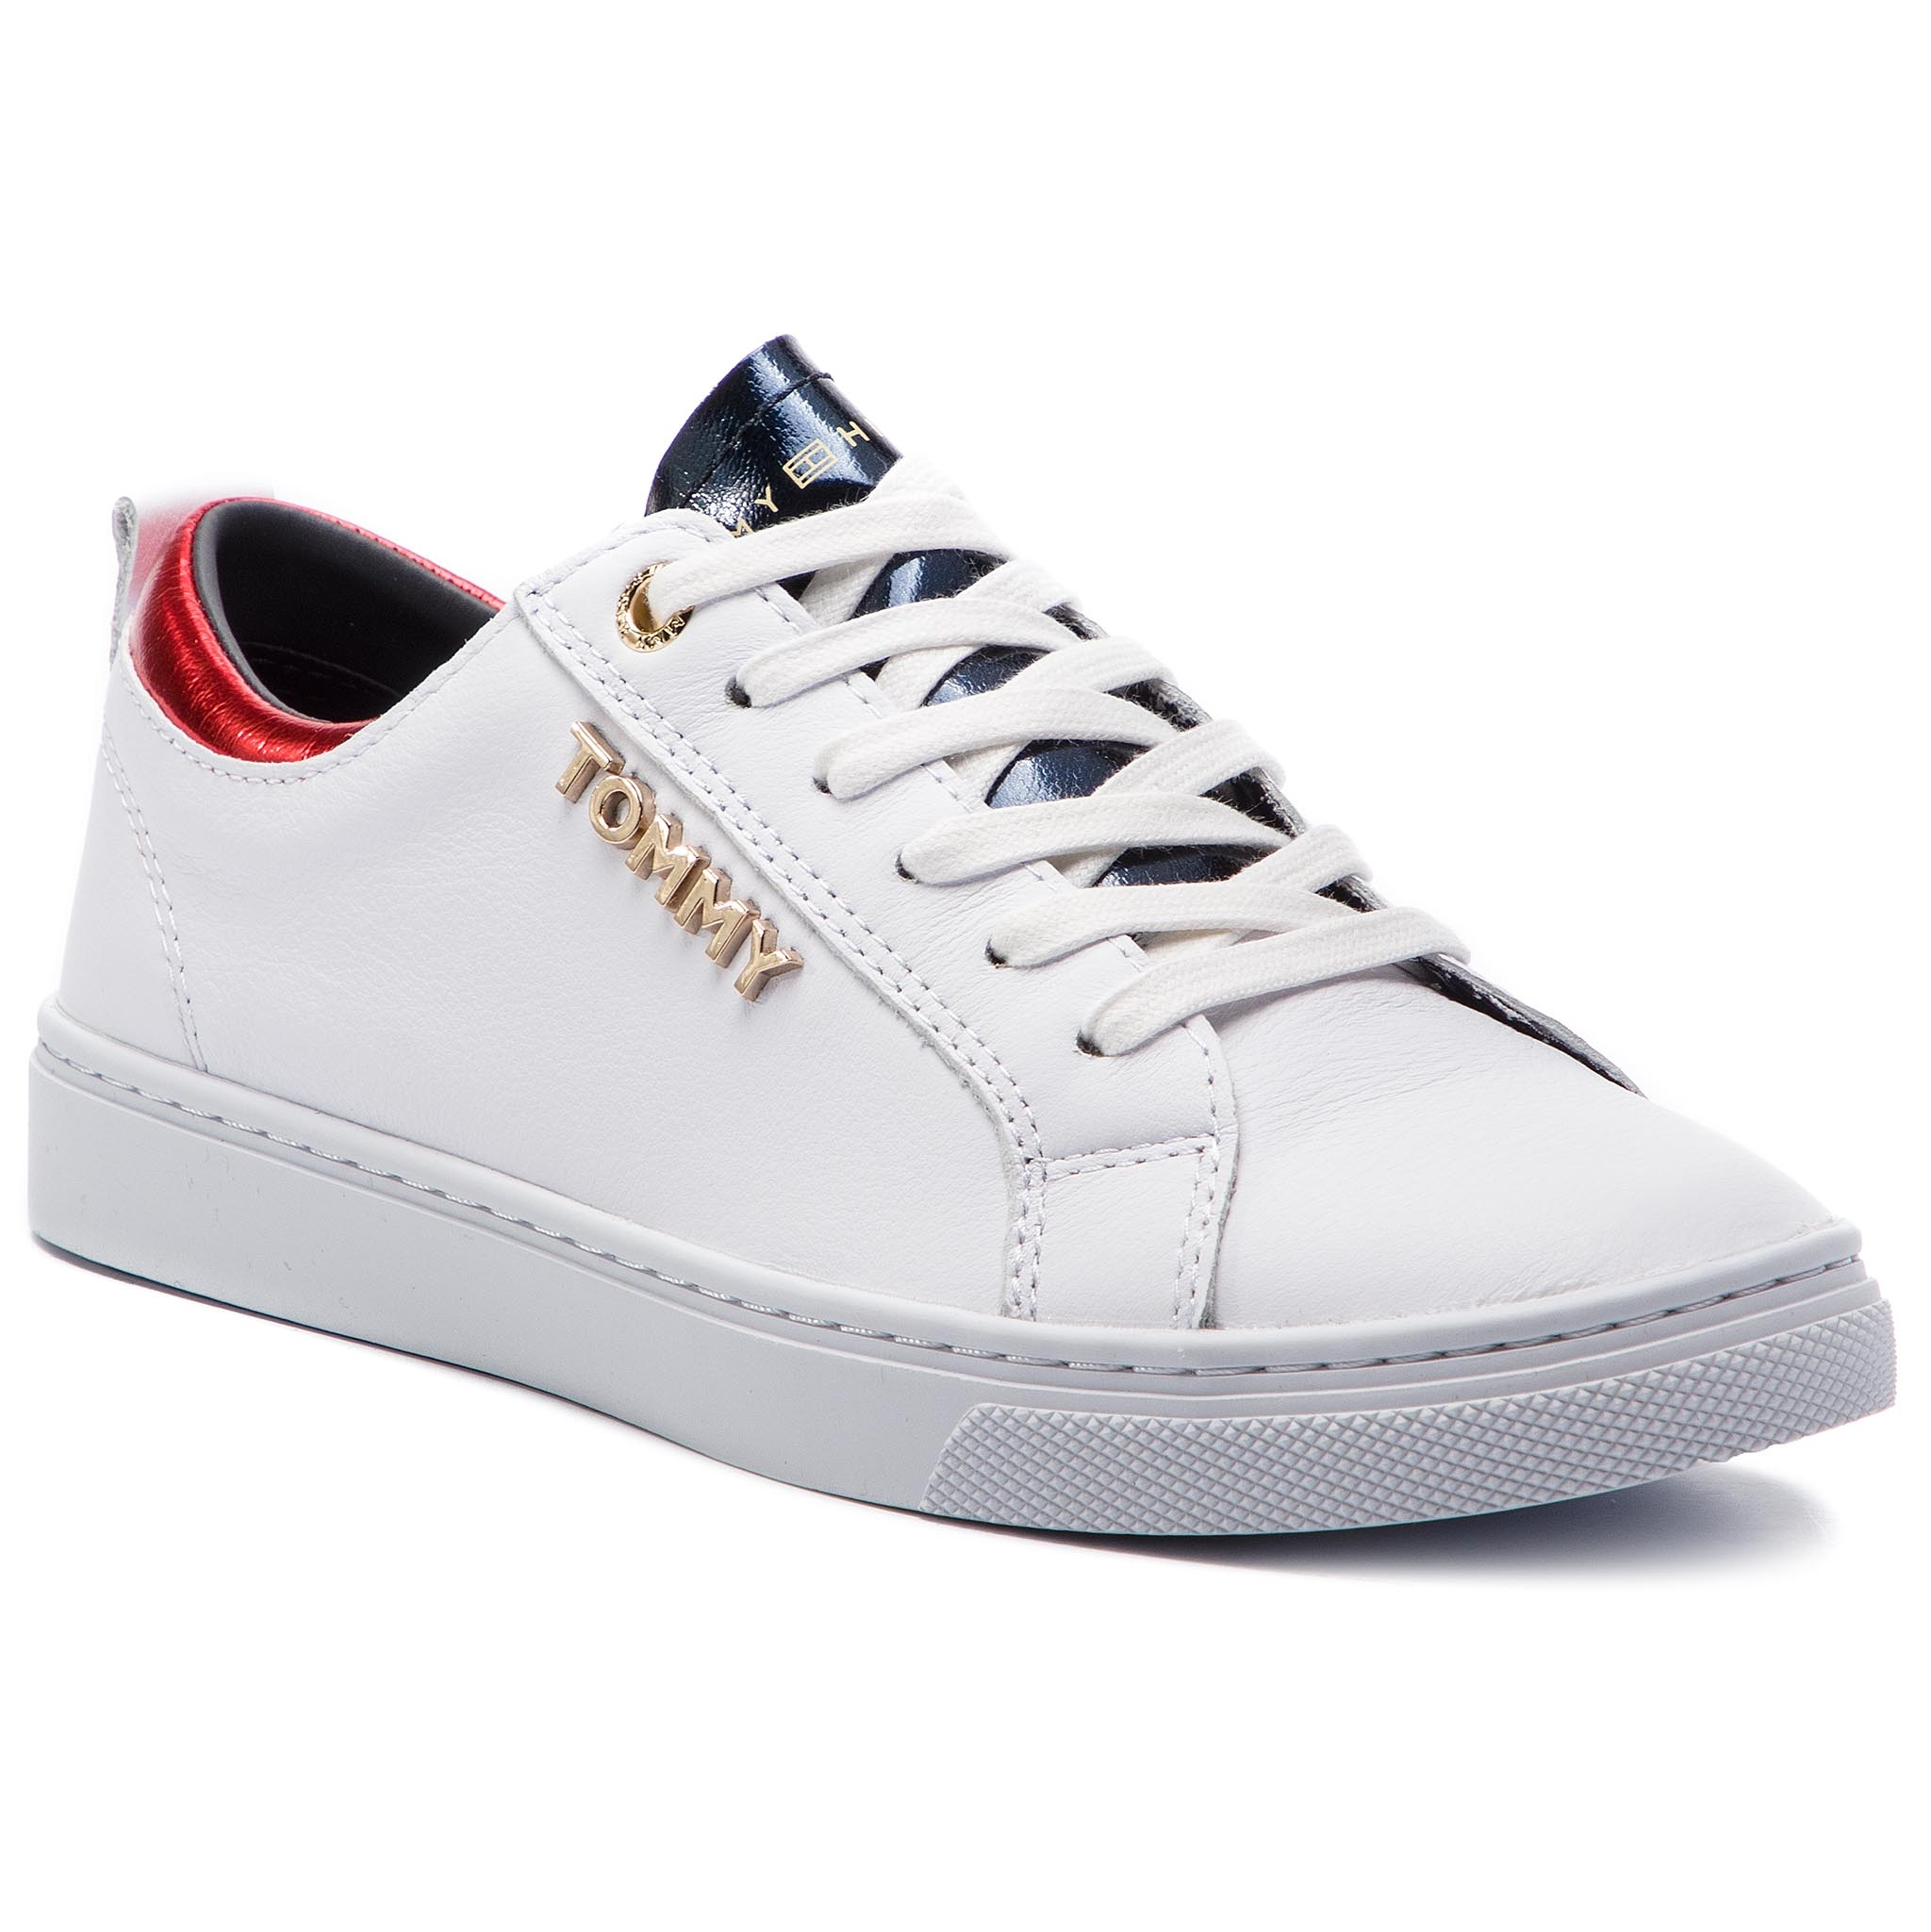 7374b1696d607 Sneakers TOMMY HILFIGER - Tommy Elastic Essential Sneaker FW0FW03707 ...